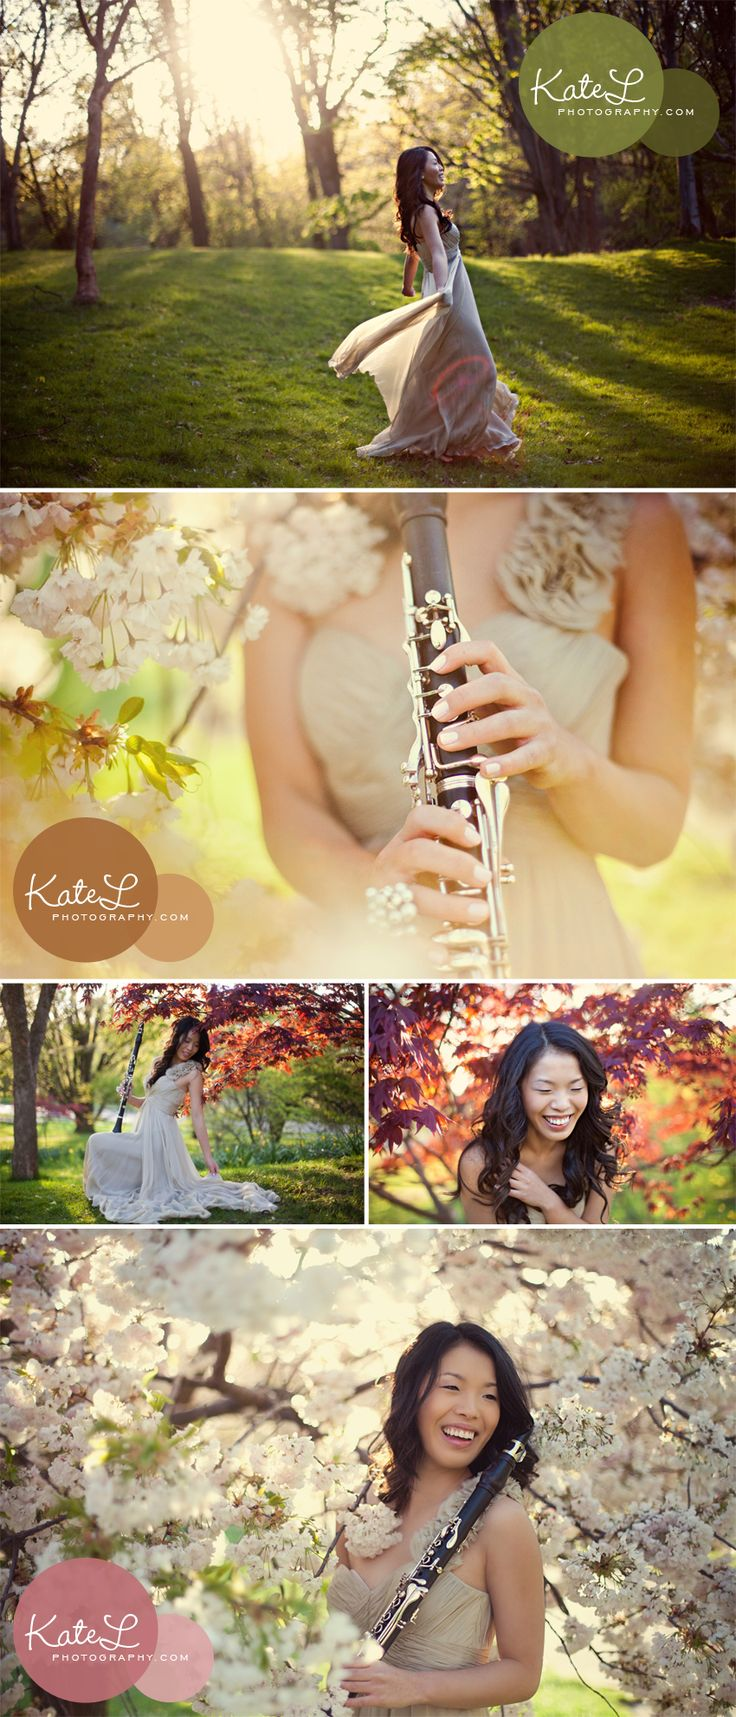 I have always loved photographing Amy, and her senior recital photos were no exception. Gorgeous girl, gorgeous dress, gorgeous weather, gorgeous spring colors…my heart was full that evening.